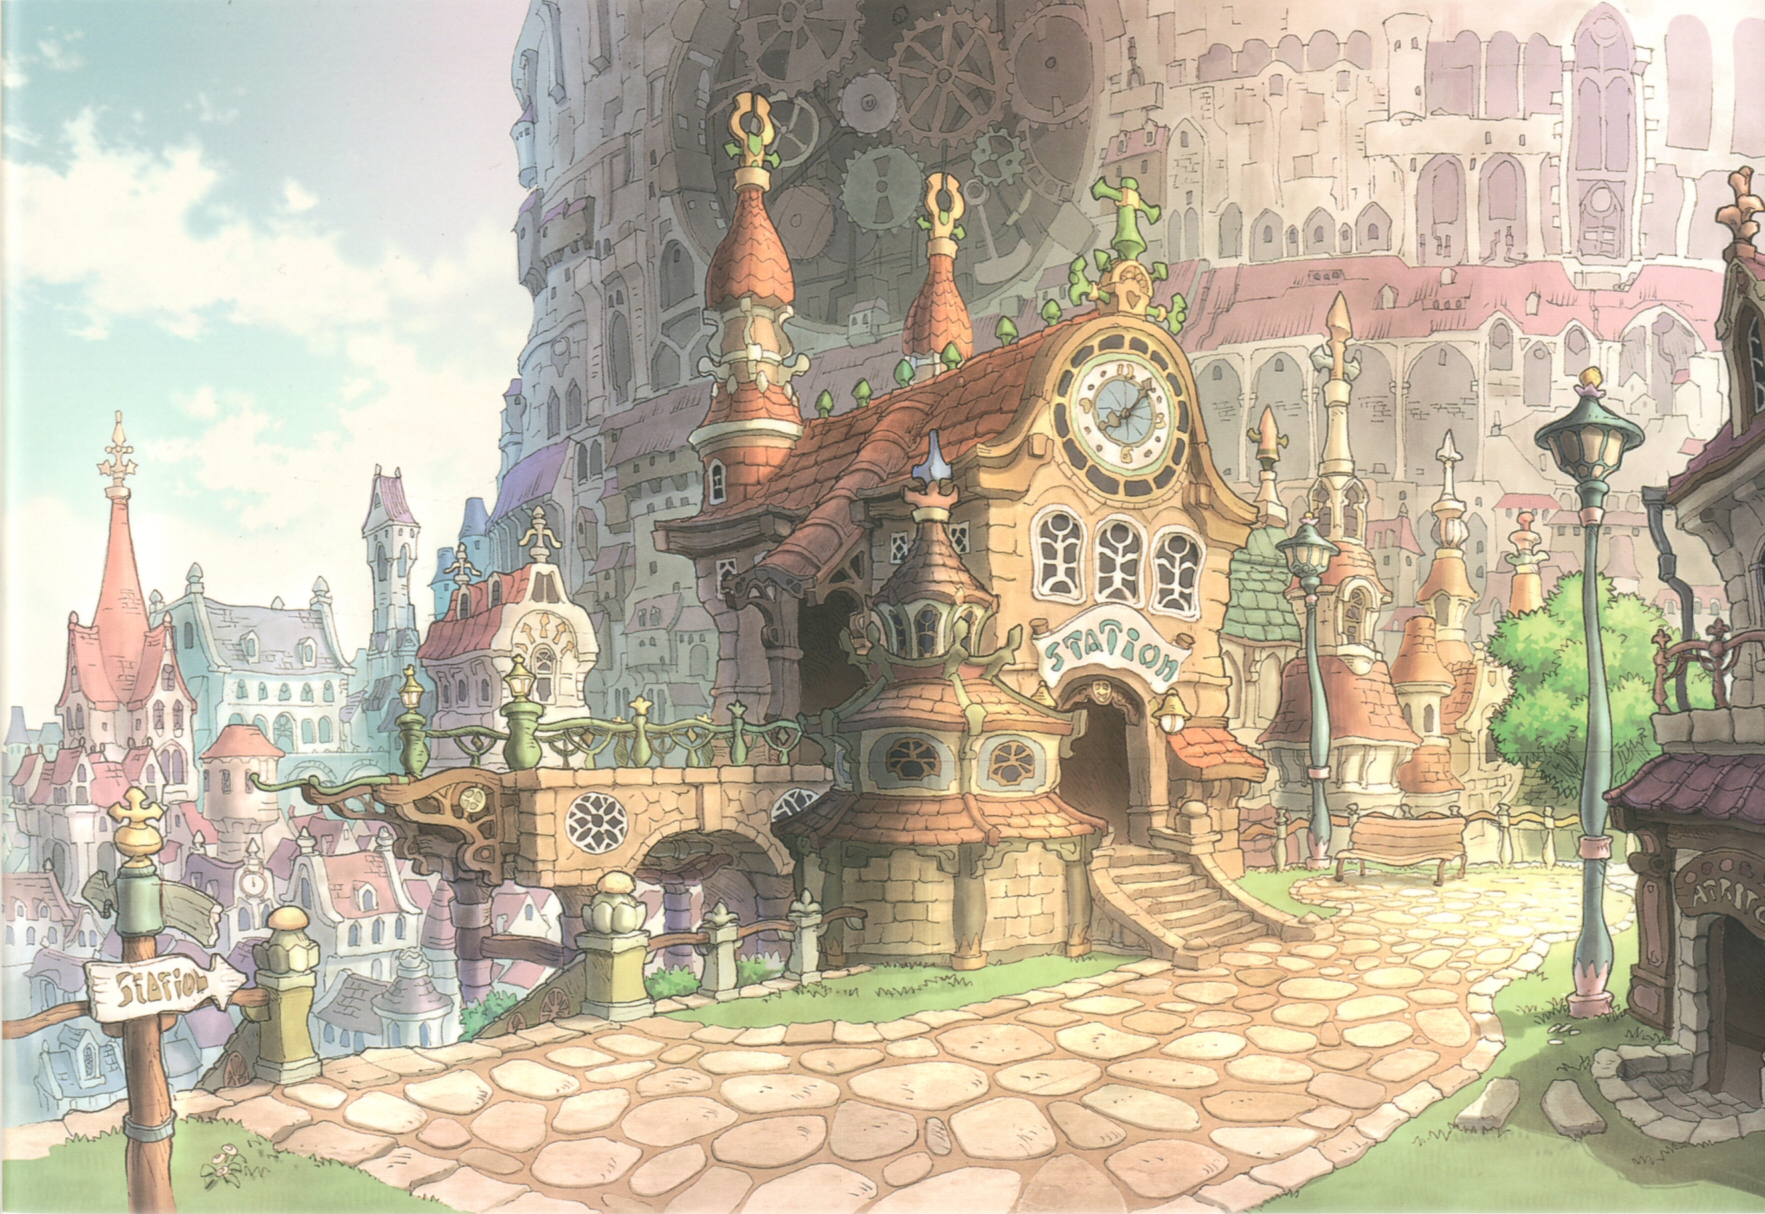 Watercolor artists directory wiki - Image Lindblum Theater District Ff9 Color Art Jpg Final Fantasy Wiki Fandom Powered By Wikia